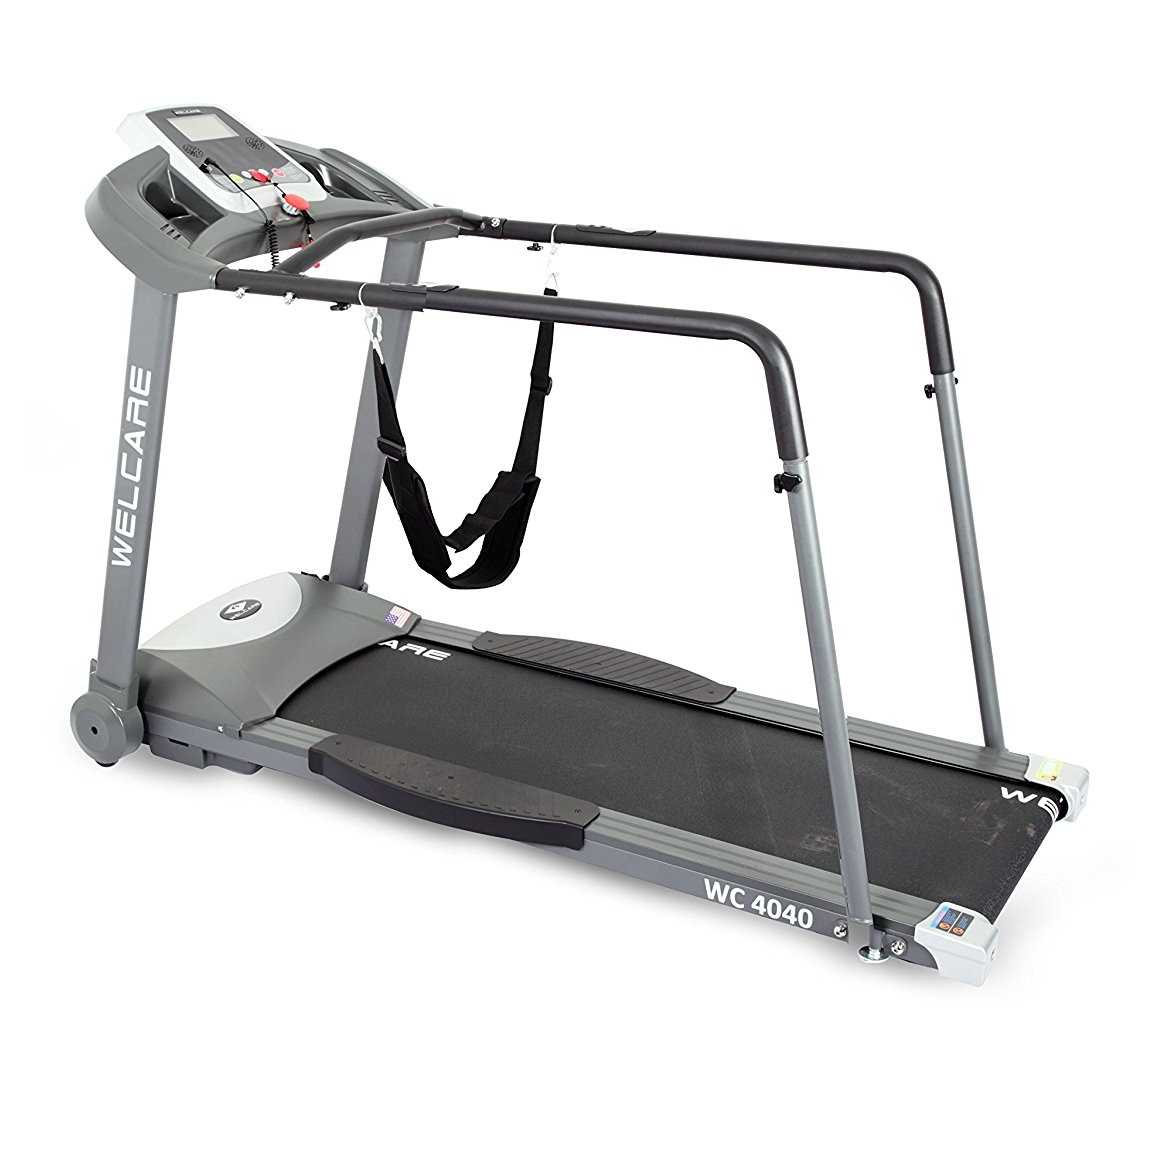 Welcare WC4040 Treadmill